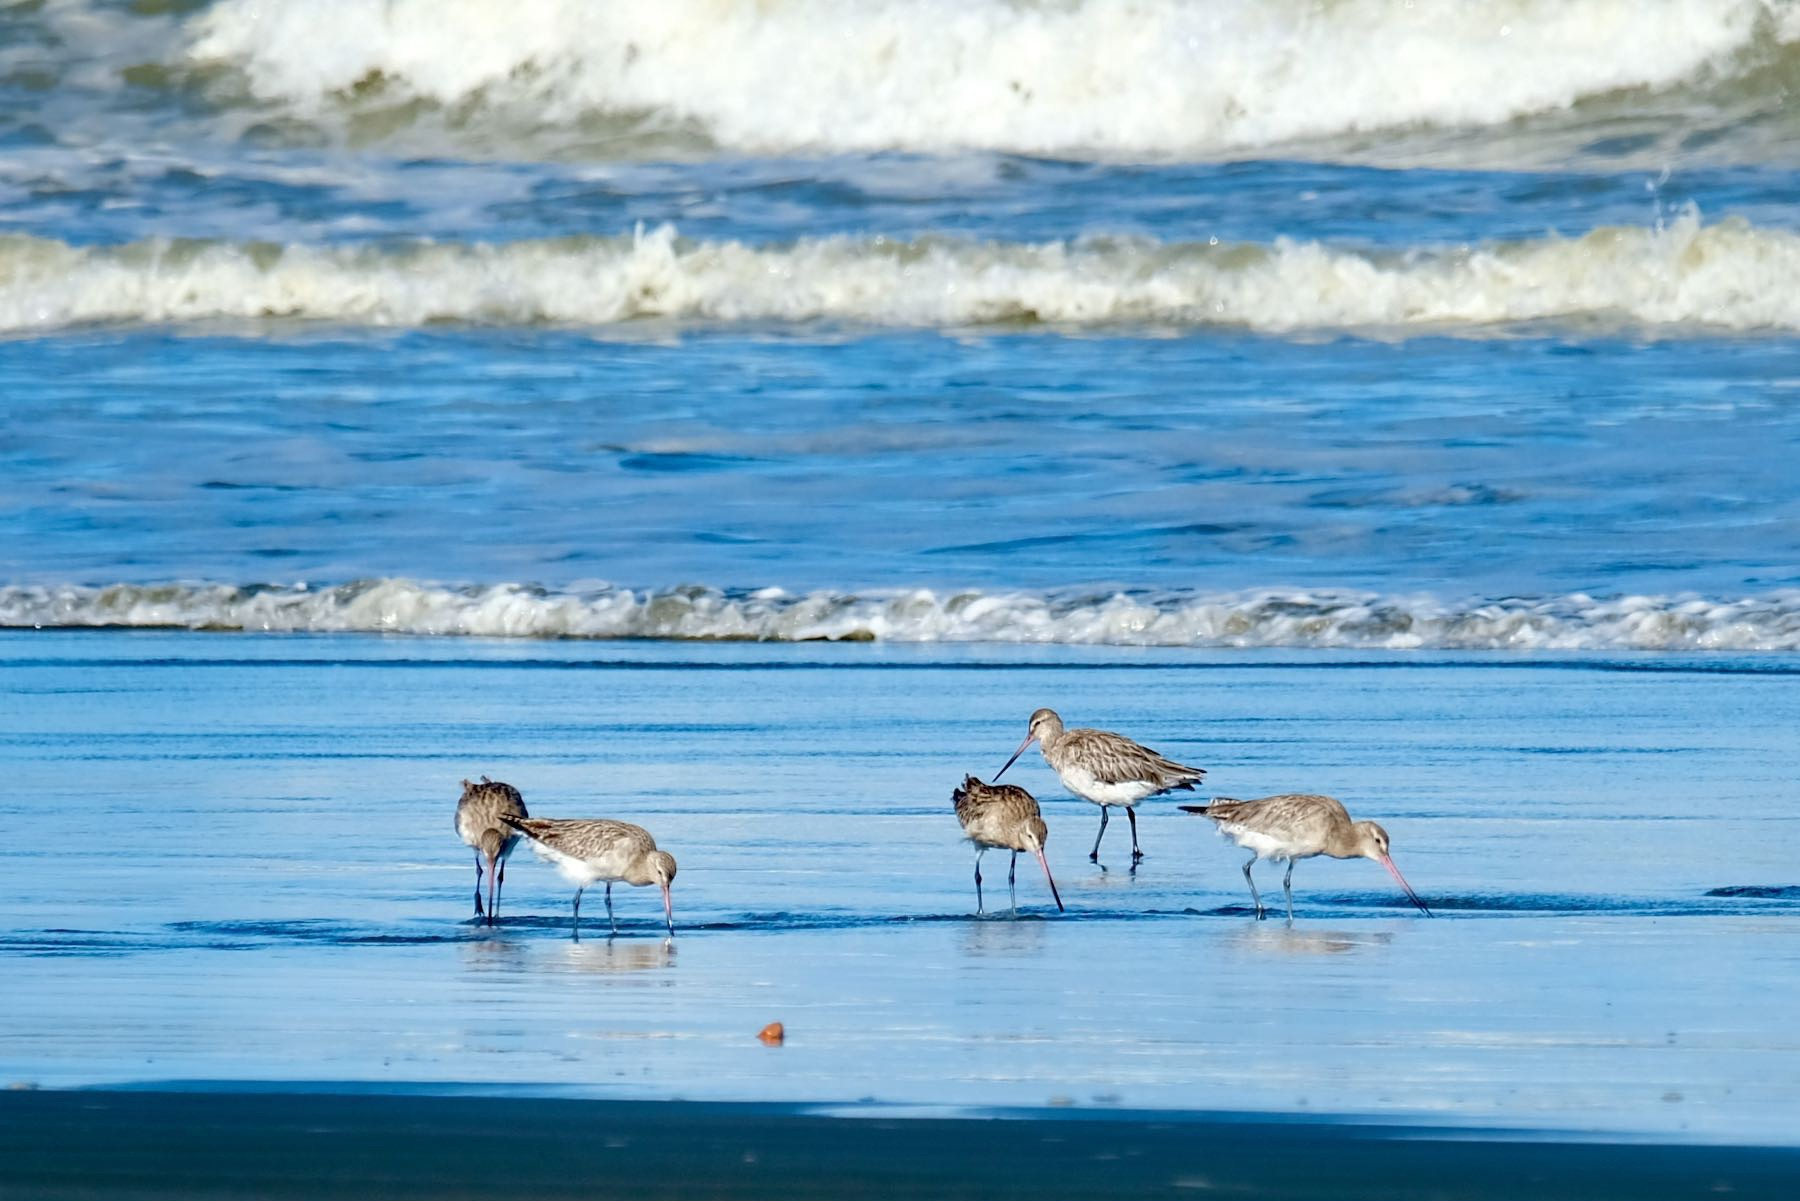 5 godwits at the edge of the sea.